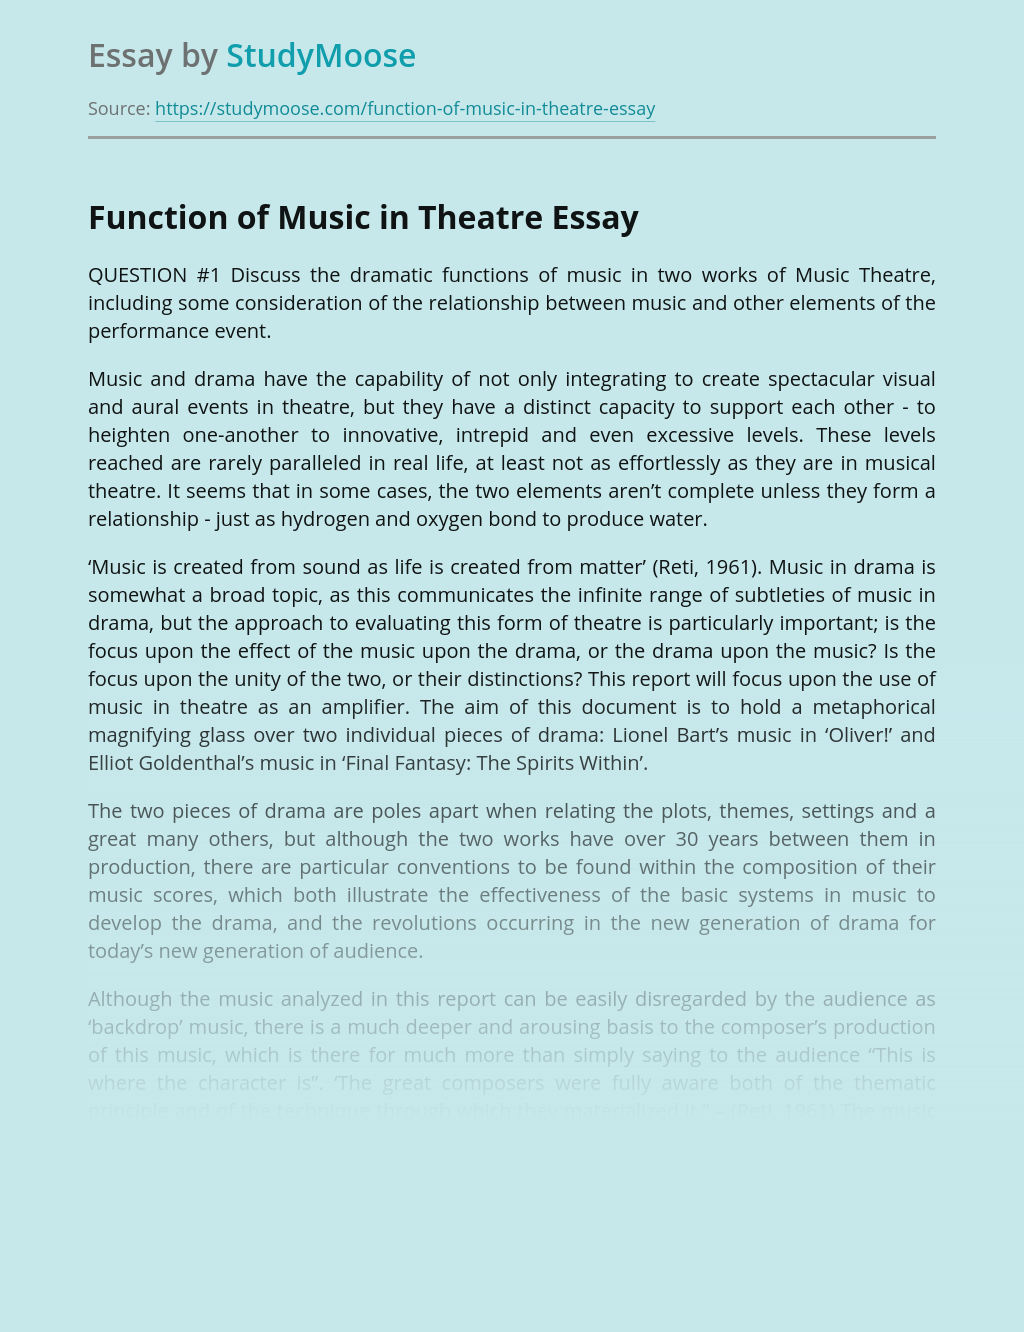 Function of Music in Theatre